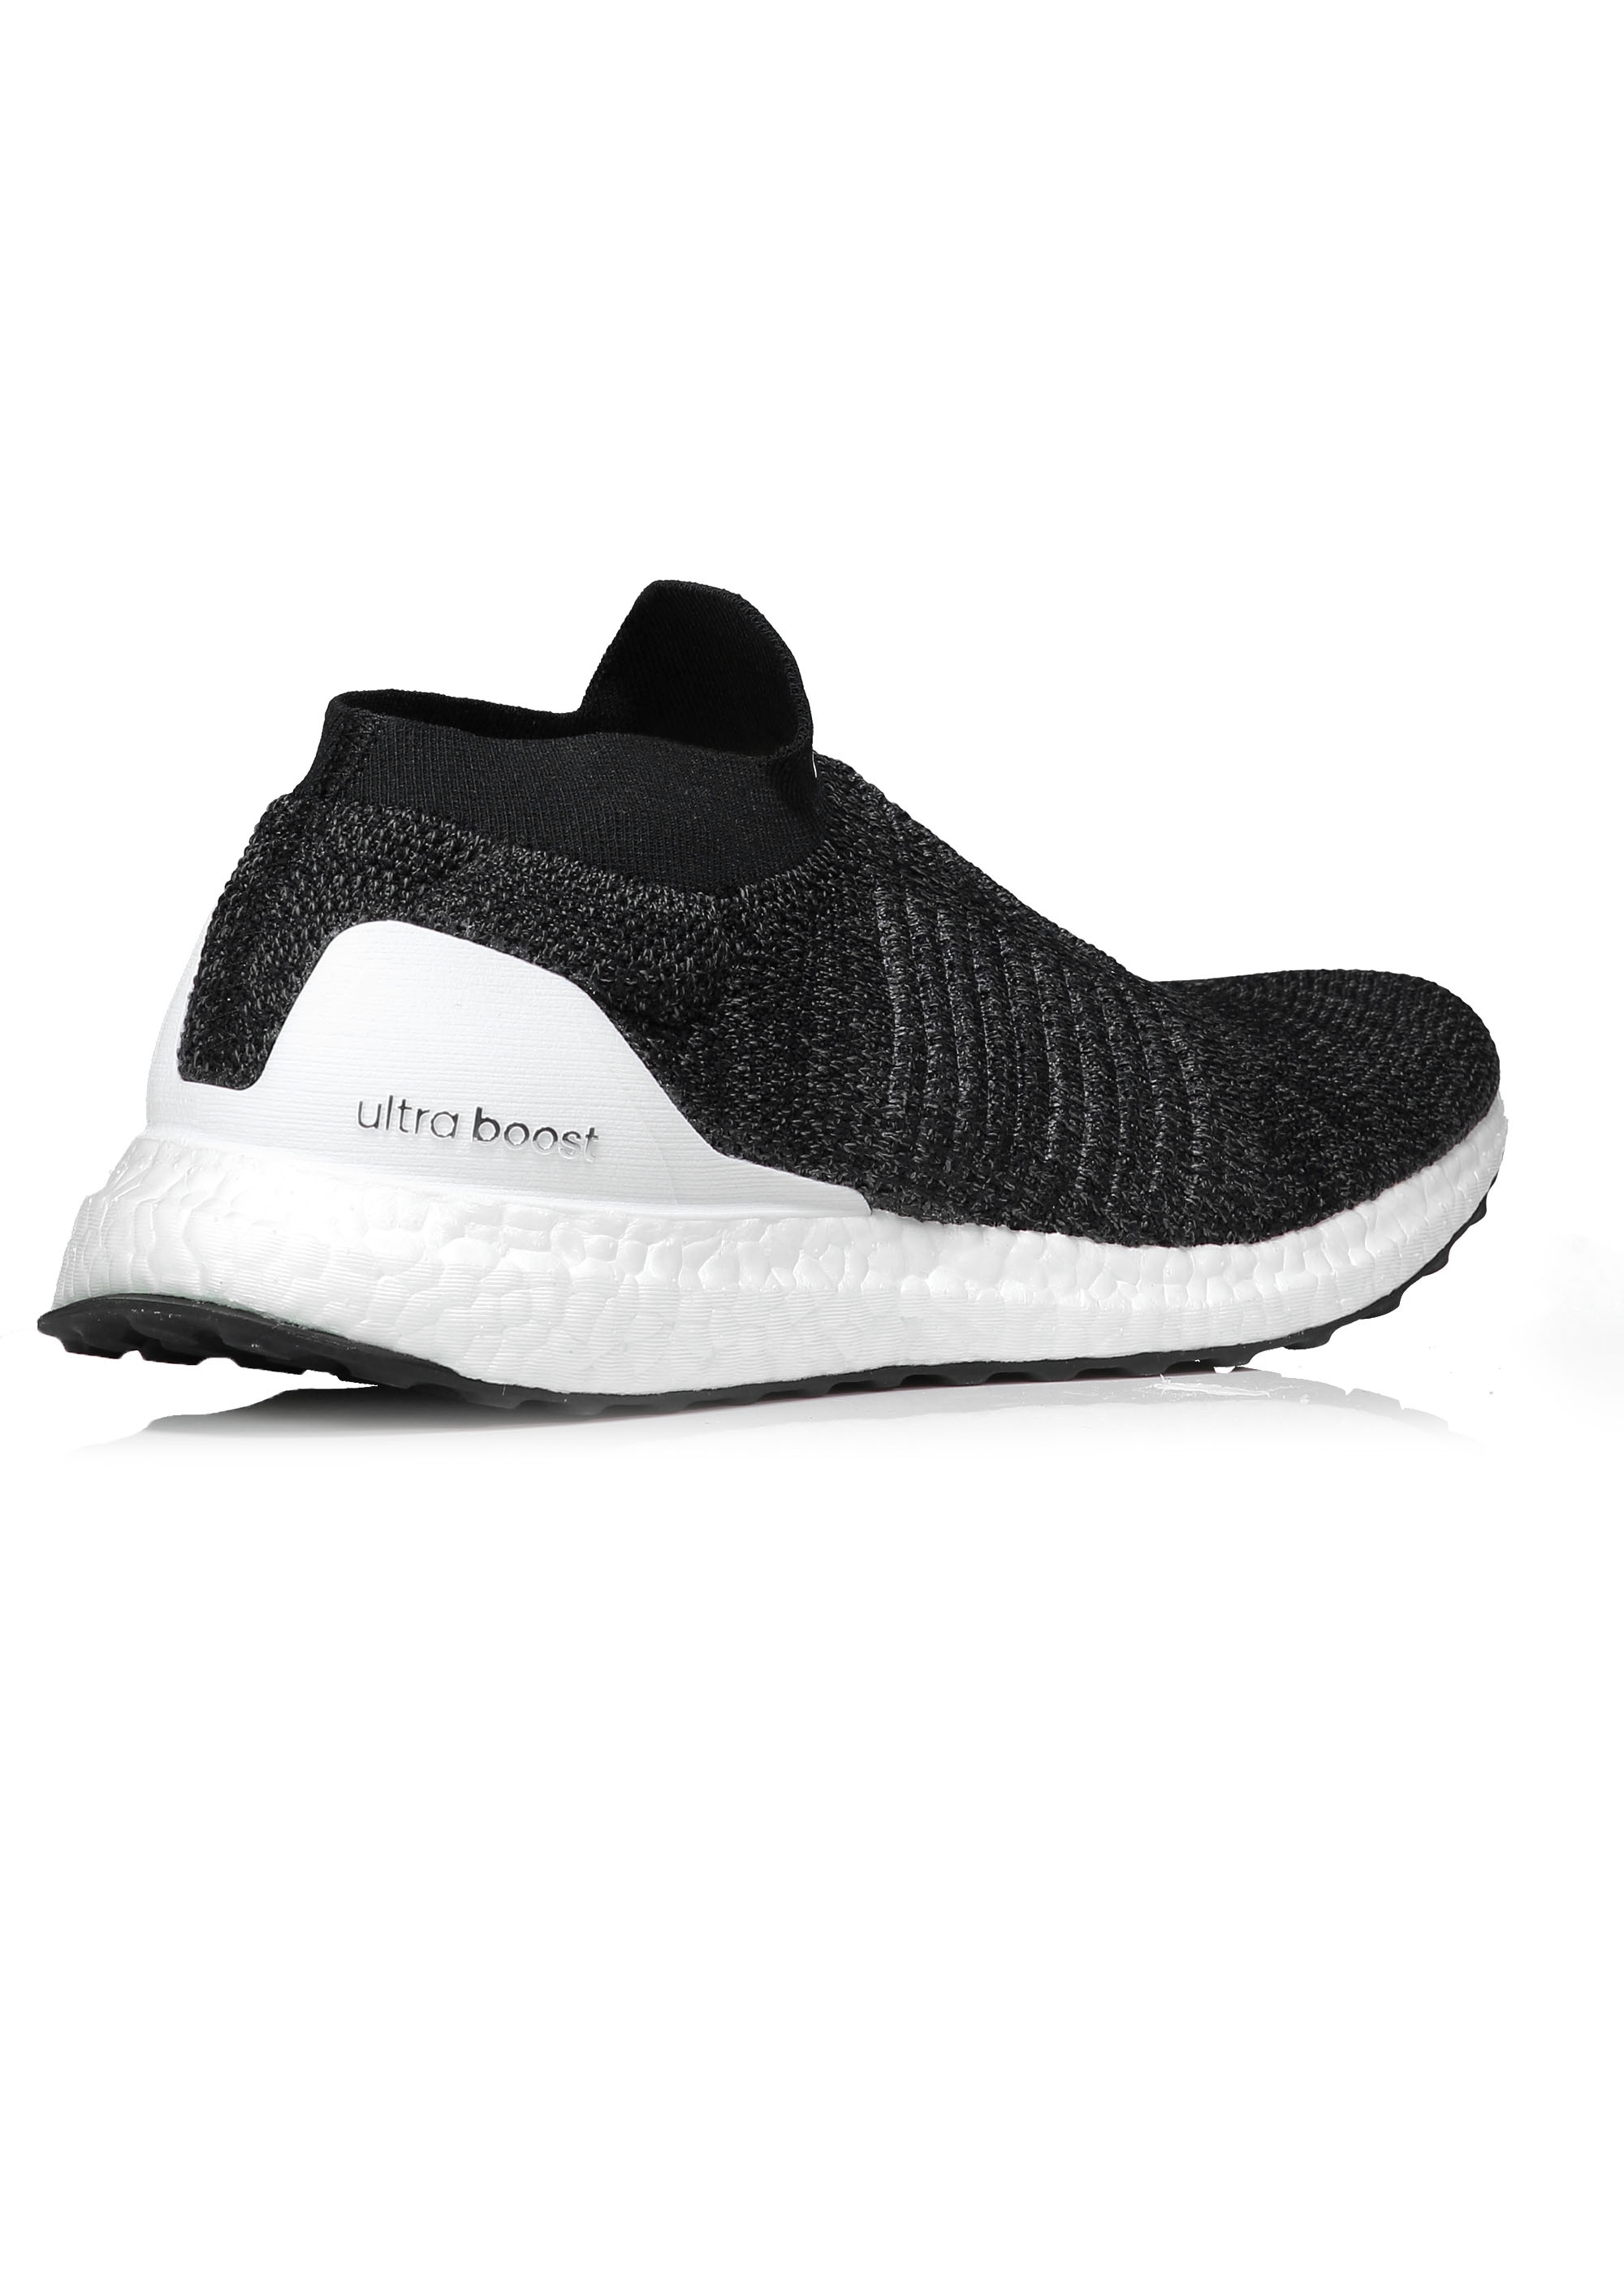 new concept e7c8b 84f6a Ultra Boost Laceless - Black